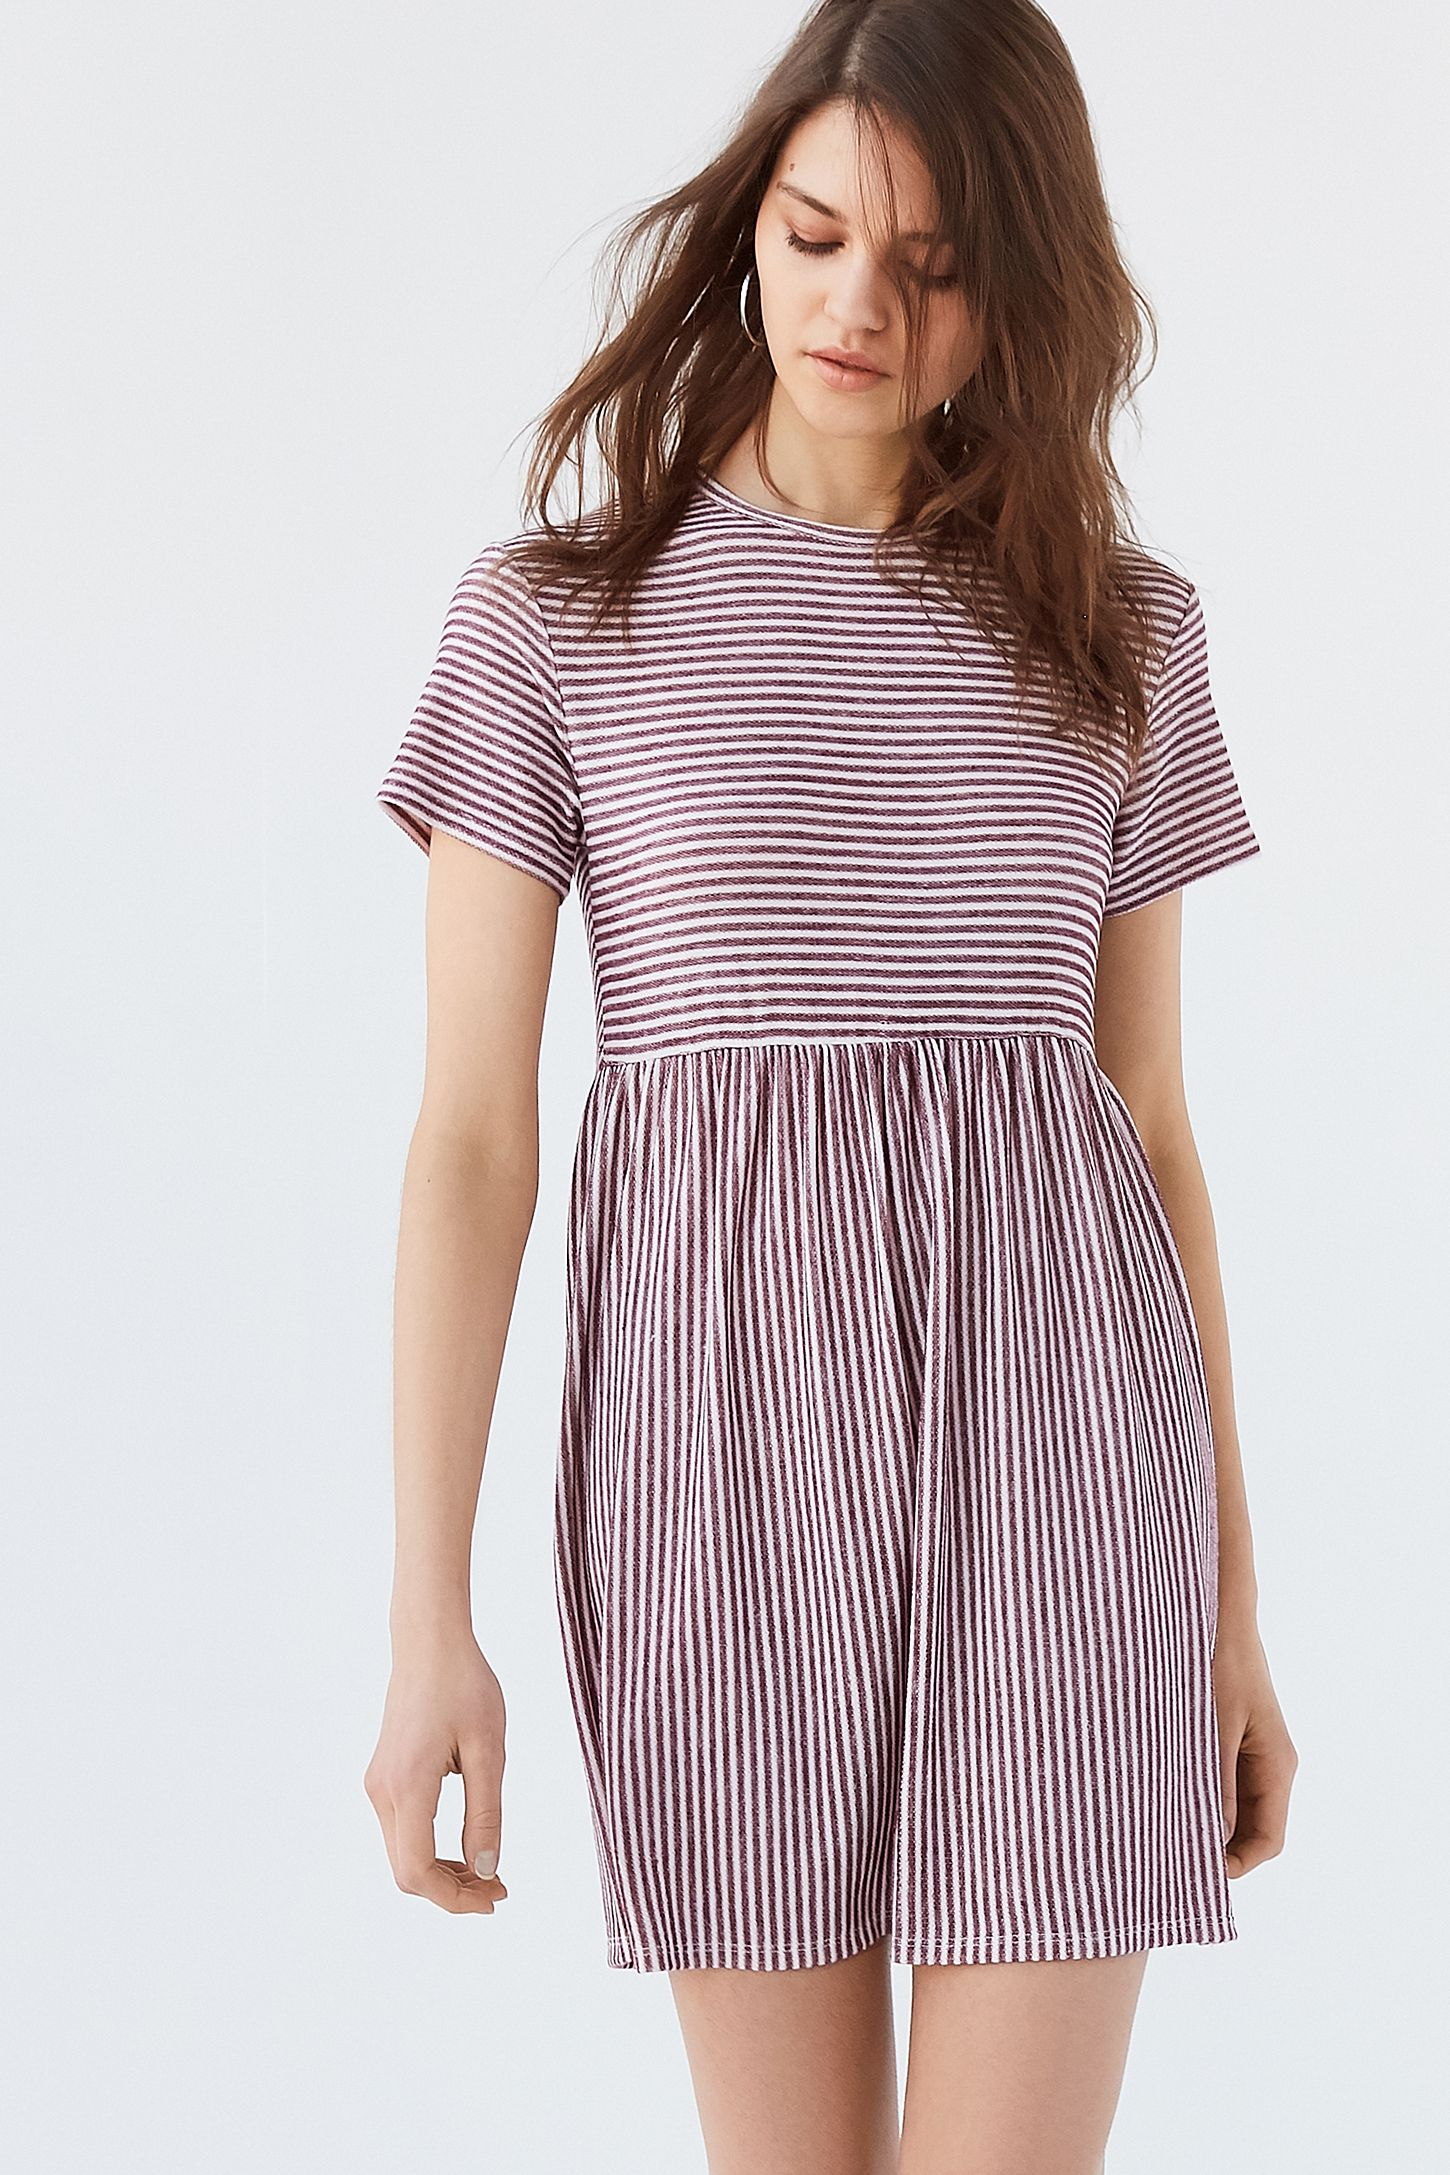 Uo Babydoll T Shirt Dress Urban Outfitters